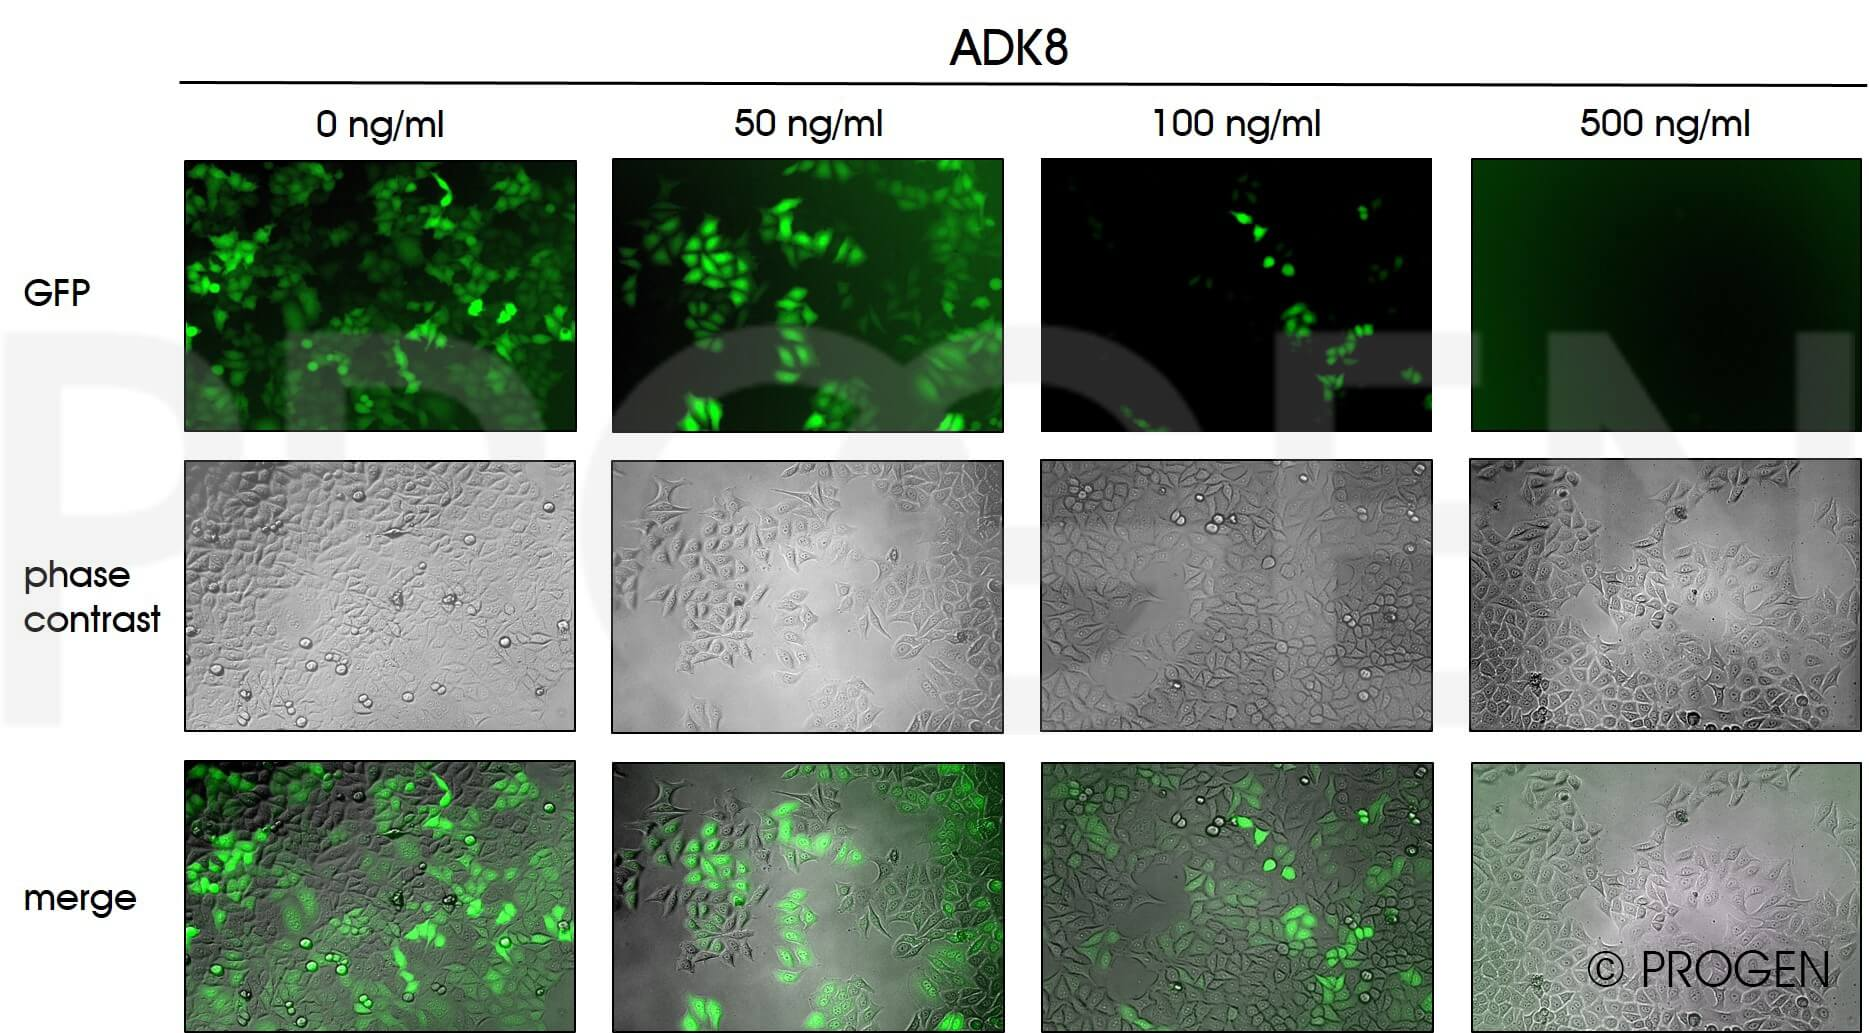 anti-AAV8 (intact particle) mouse monoclonal, ADK8, lyophilized, purified, sample